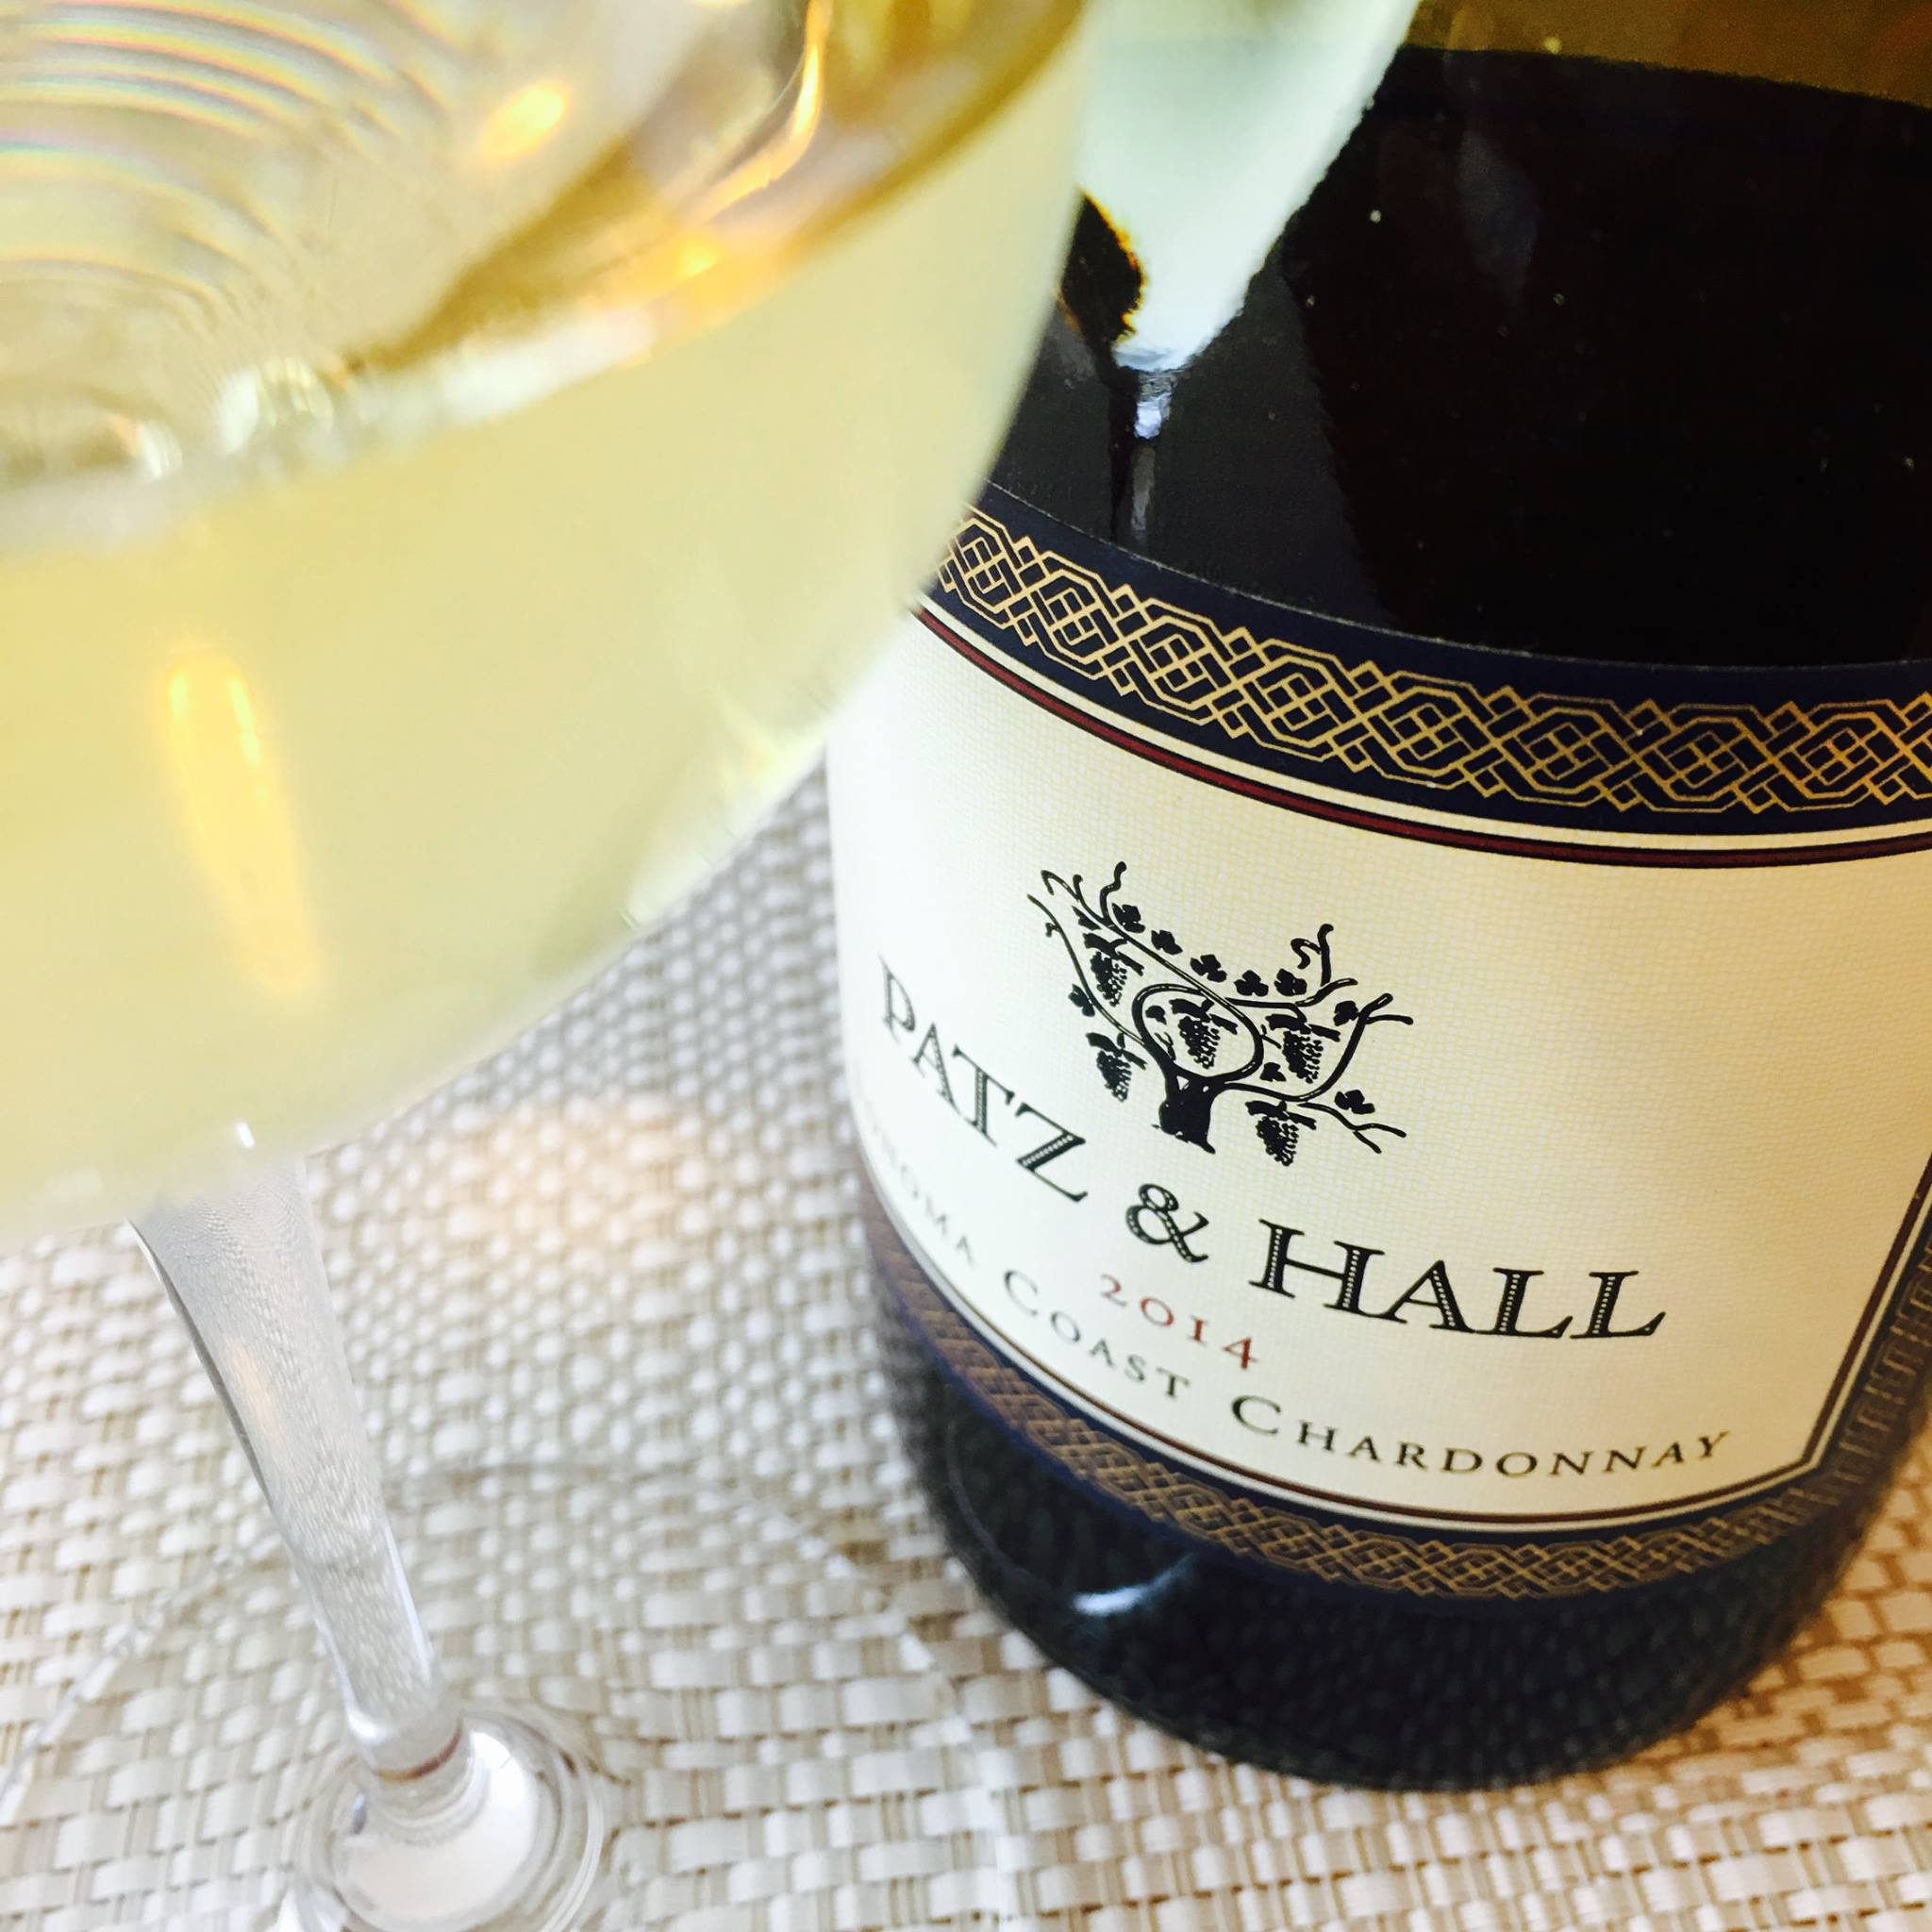 2013 Patz & Hall Chardonnay Hyde Vineyard Carneros, Napa Valley